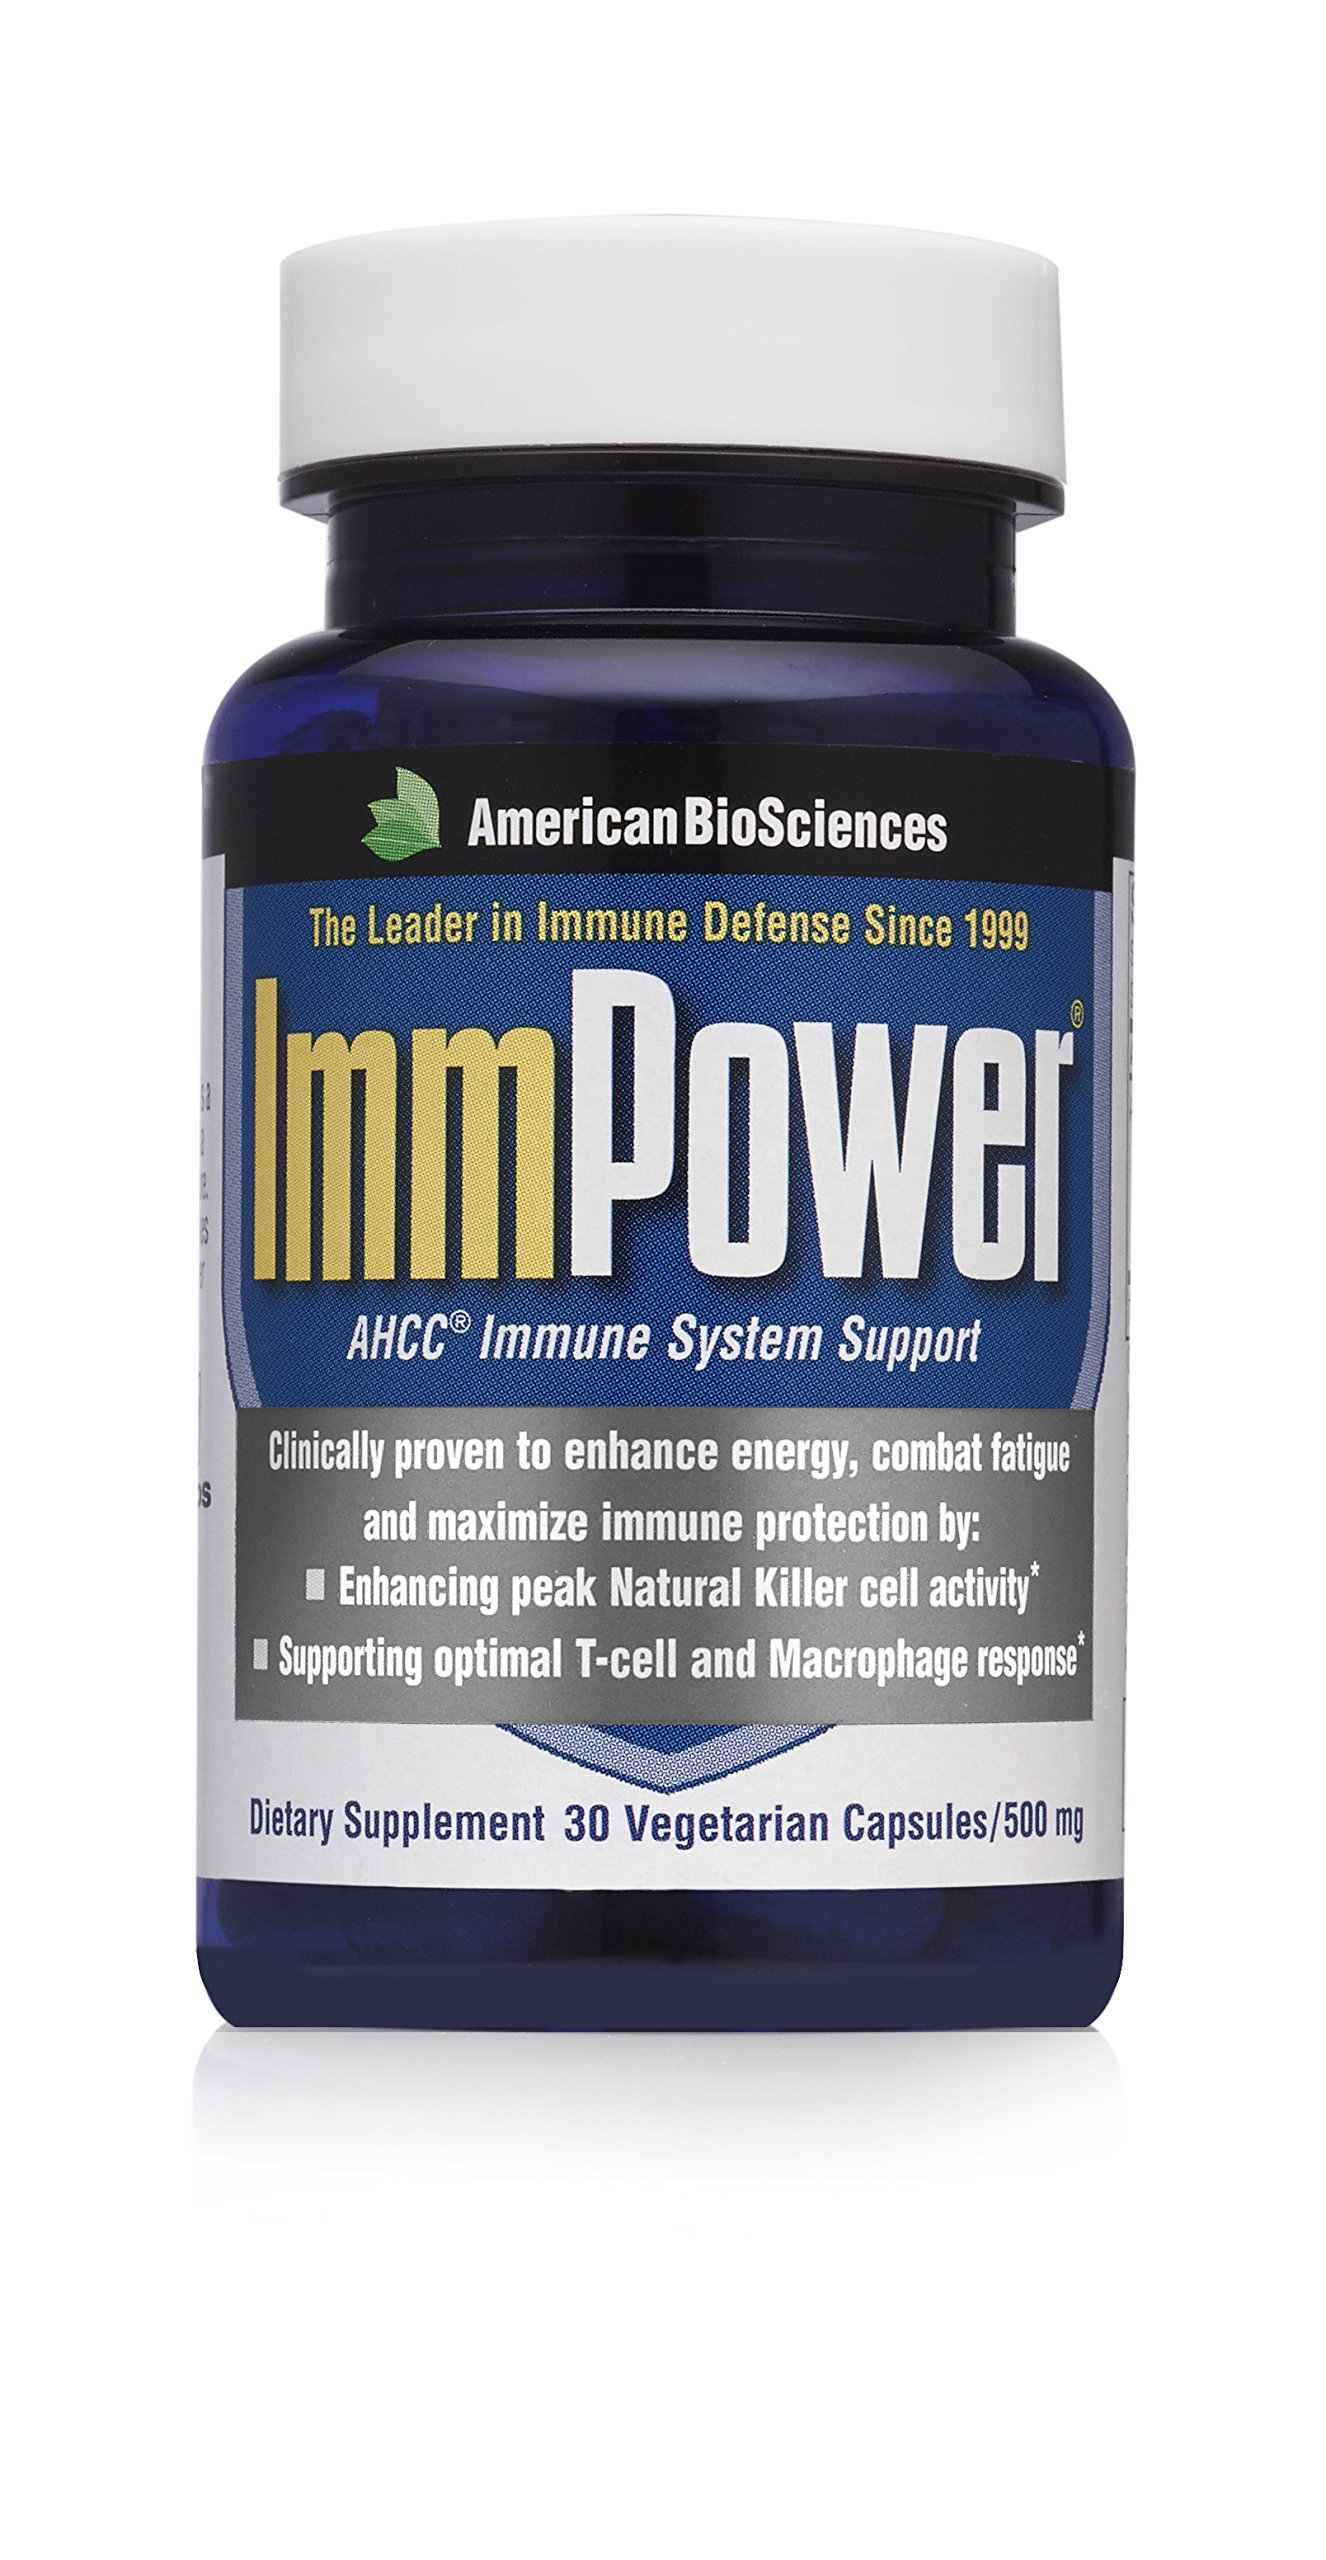 American BioSciences ImmPower AHCC Supplement 2-Pack, Enhanced Immune Support, Natural Killer Cell Activity and Cytokine Production, 30 Vegetarian Capsules, 500 milligrams per Capsule by American BioSciences